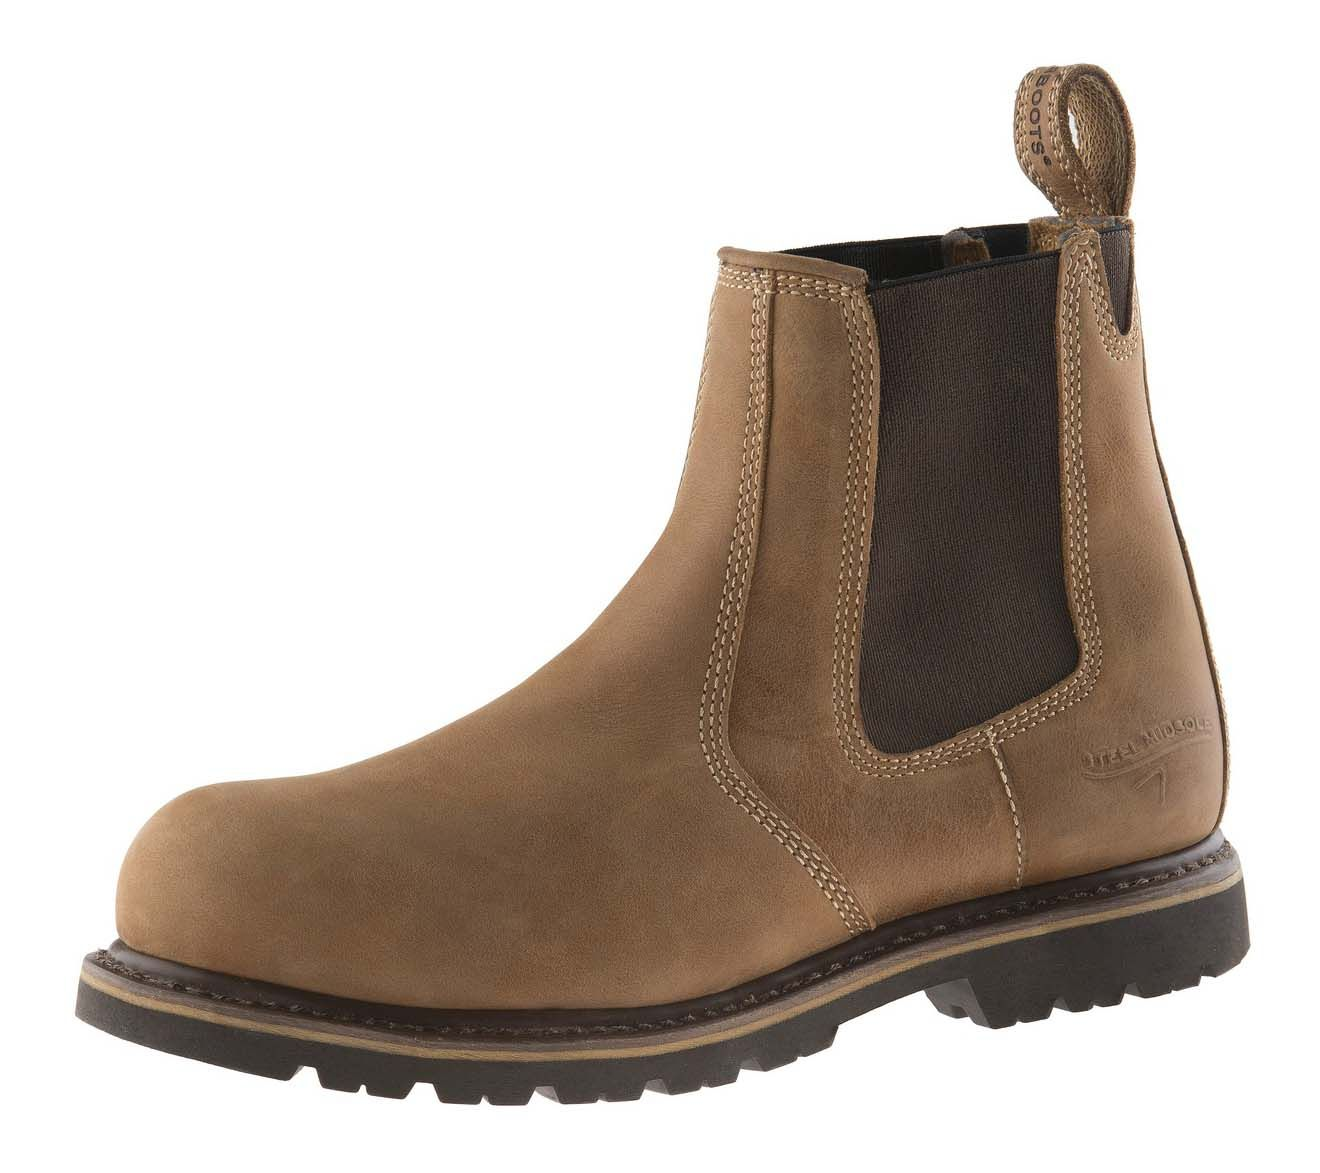 Buckler B1151SM Buckflex Goodyear Welted Full Safety Dealer Boots Brown